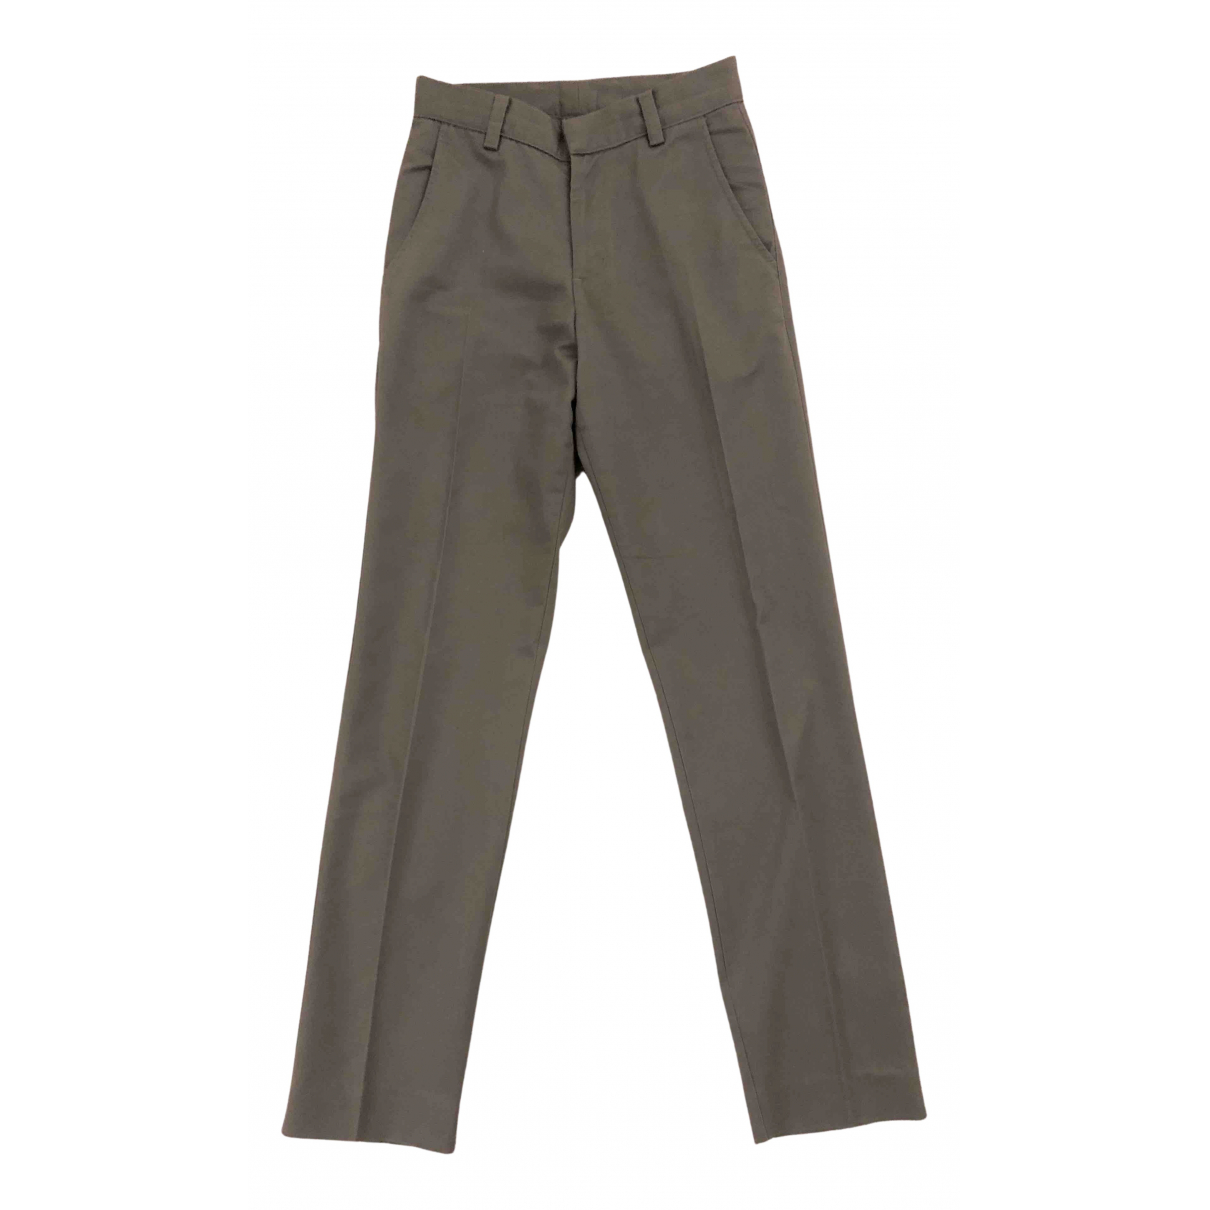 American Apparel N Grey Cotton Trousers for Men XS International